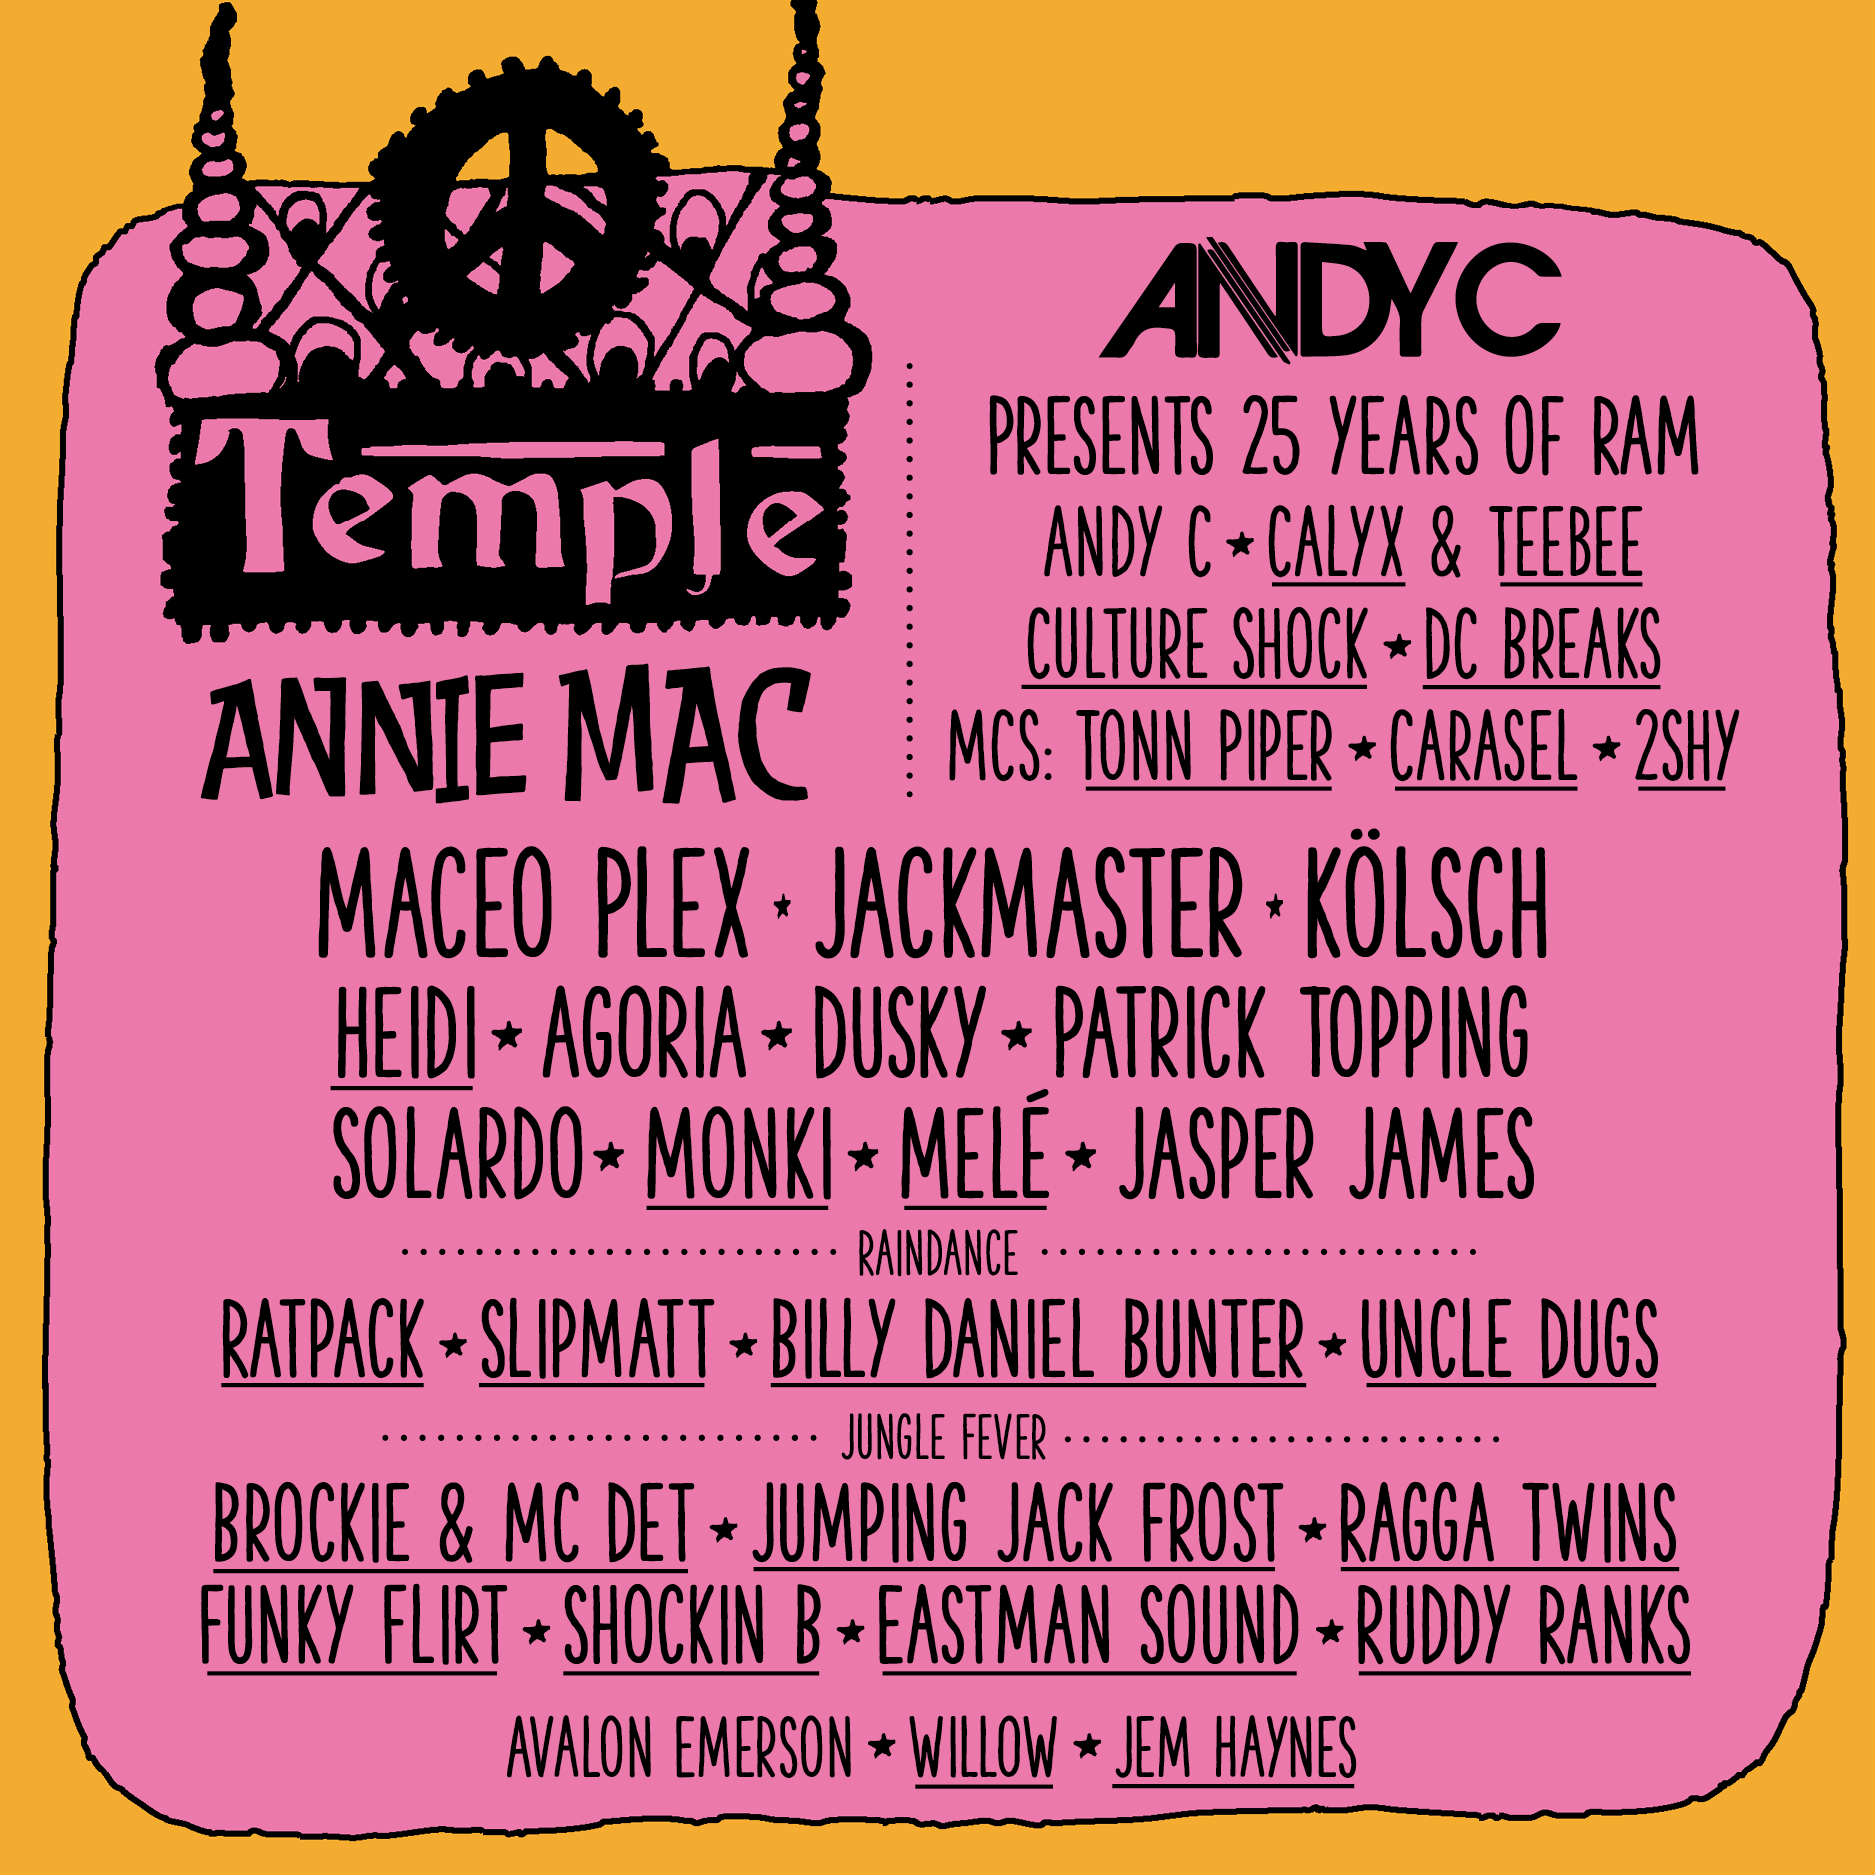 Andy C presents 25 years of RAM at Bestival